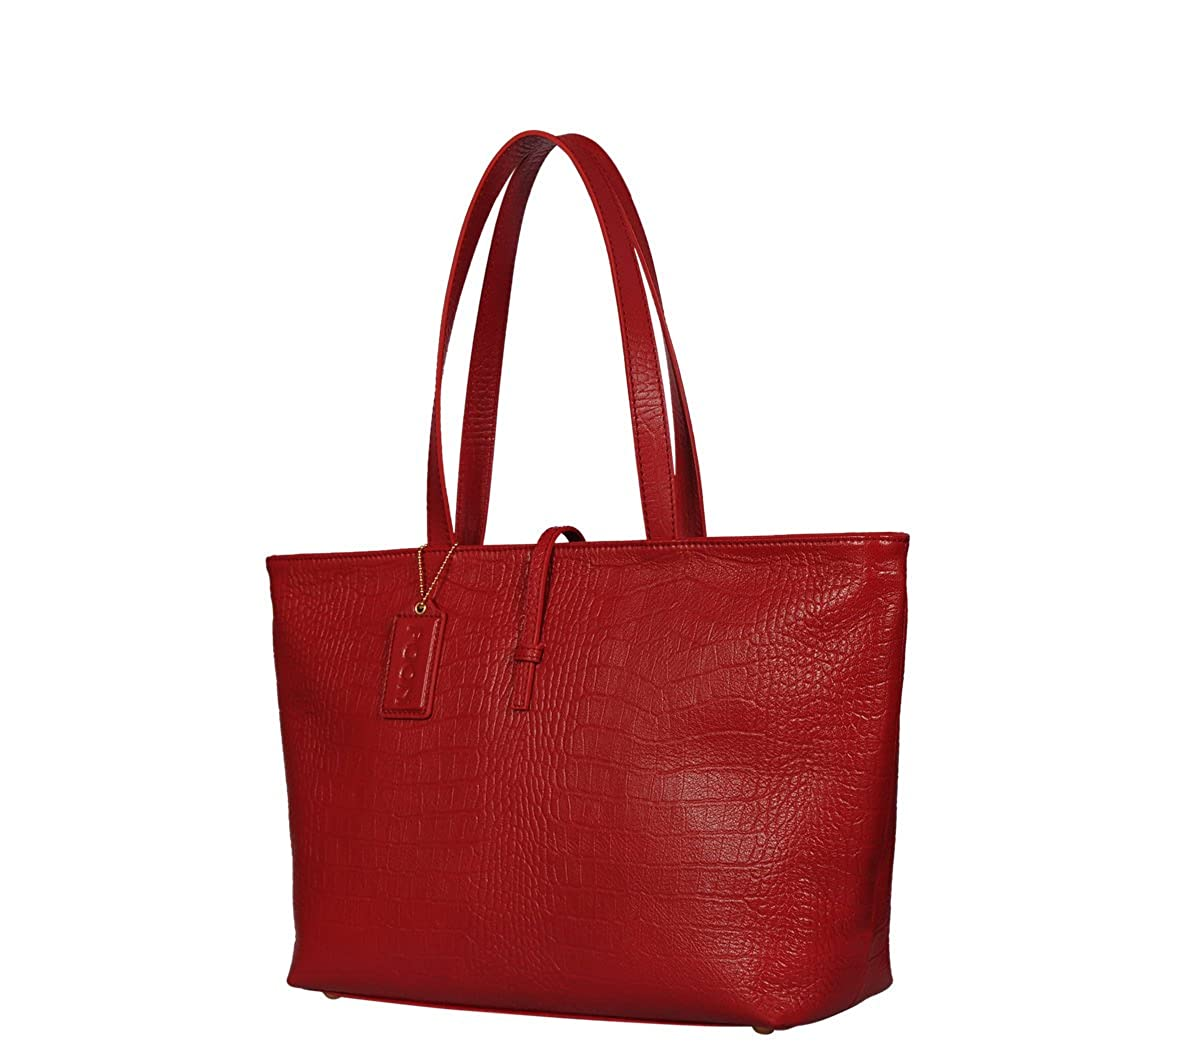 9e35897813ee POON Handbag Leather Red Hand and Shoulder Bag   Ladies Women Shoulderbags Tote  Bag Handbags    Amazon.co.uk  Shoes   Bags